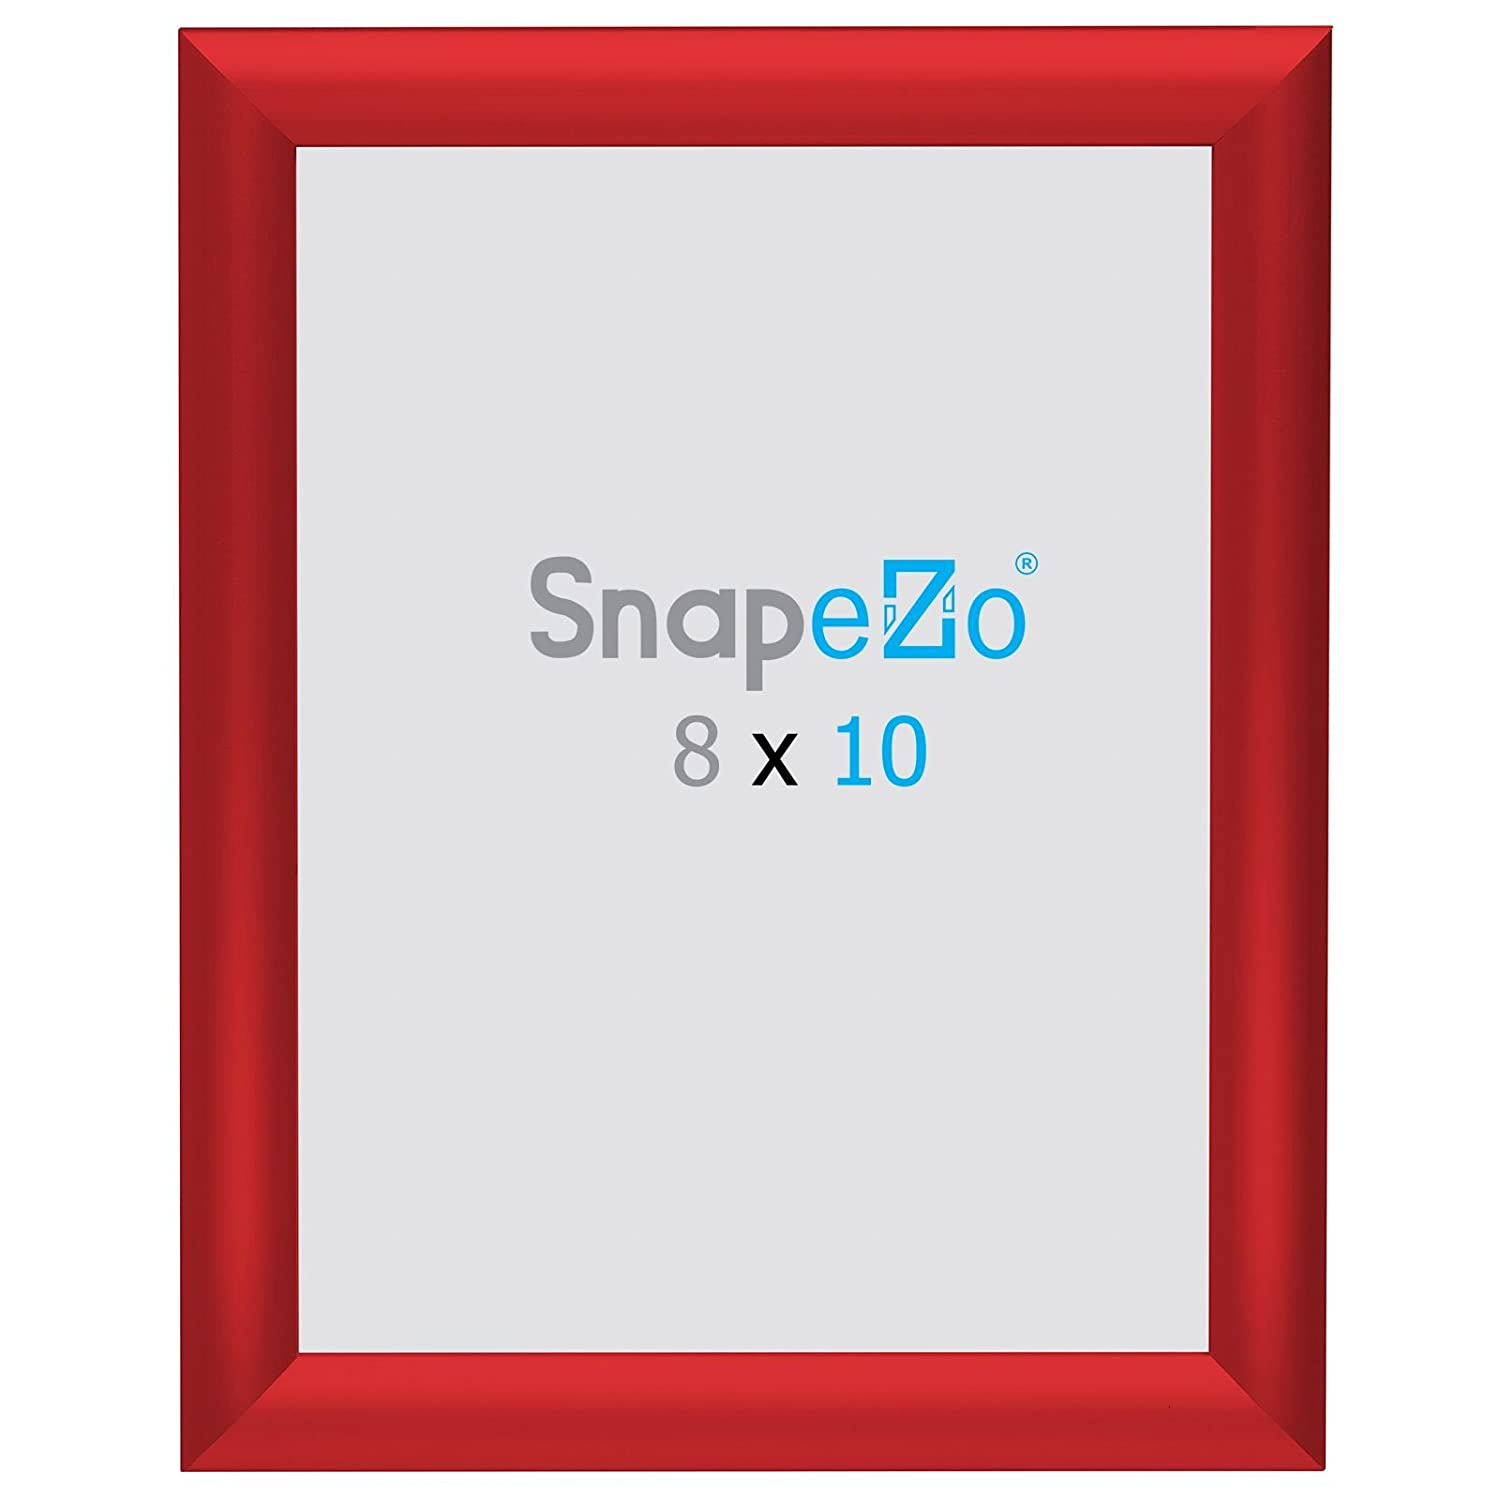 Amazon.com - SnapeZo Red Photo Frame 8x10 Inches, 1.2\